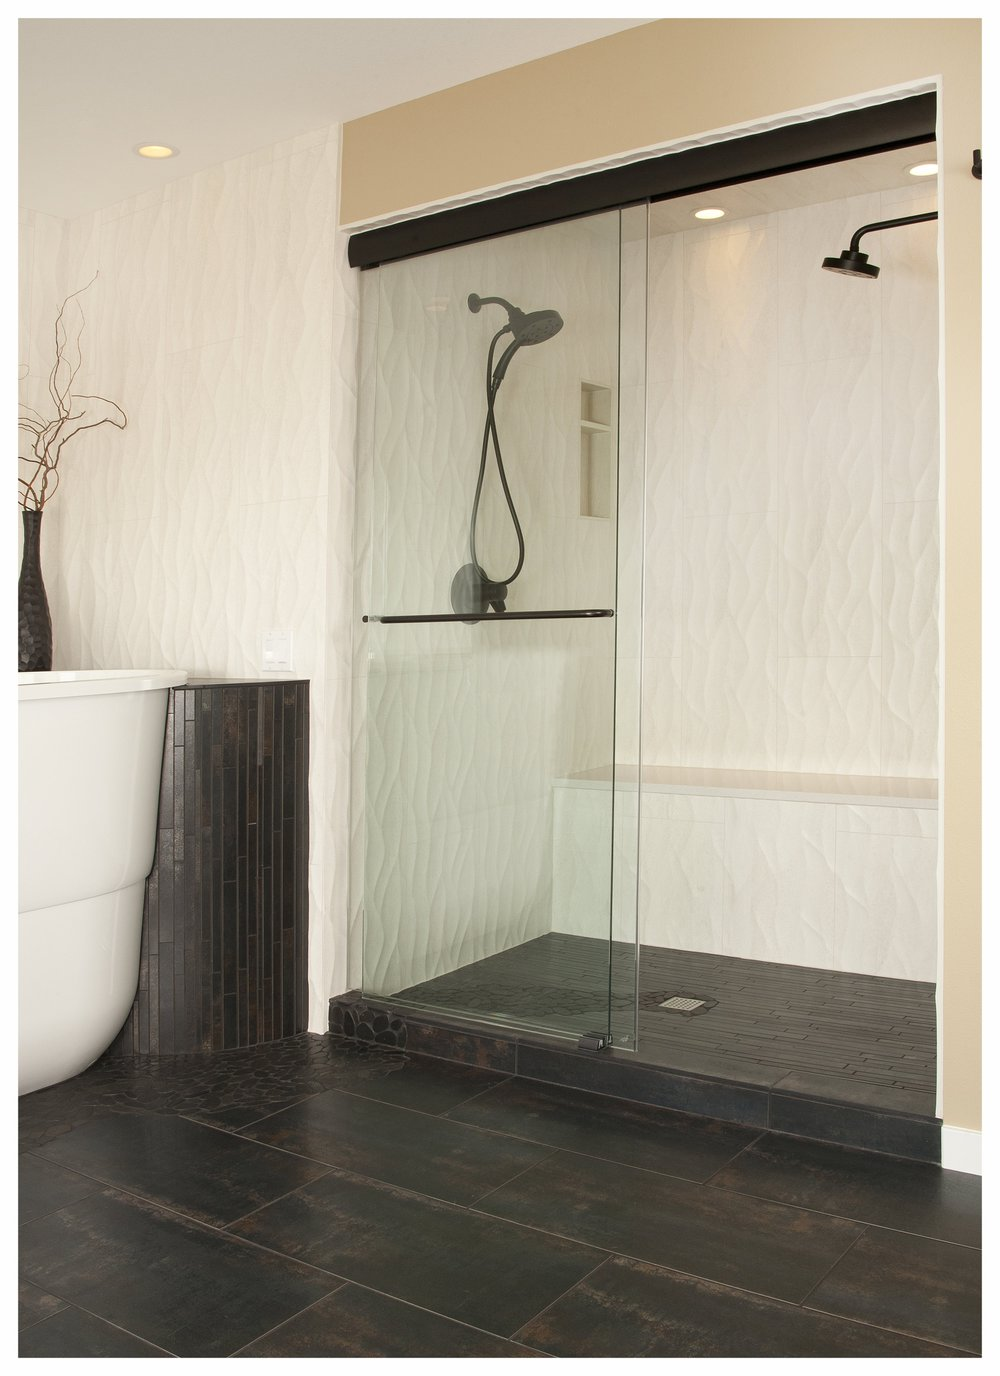 Kirkland Contemporary Master Bath 8 (2).jpg